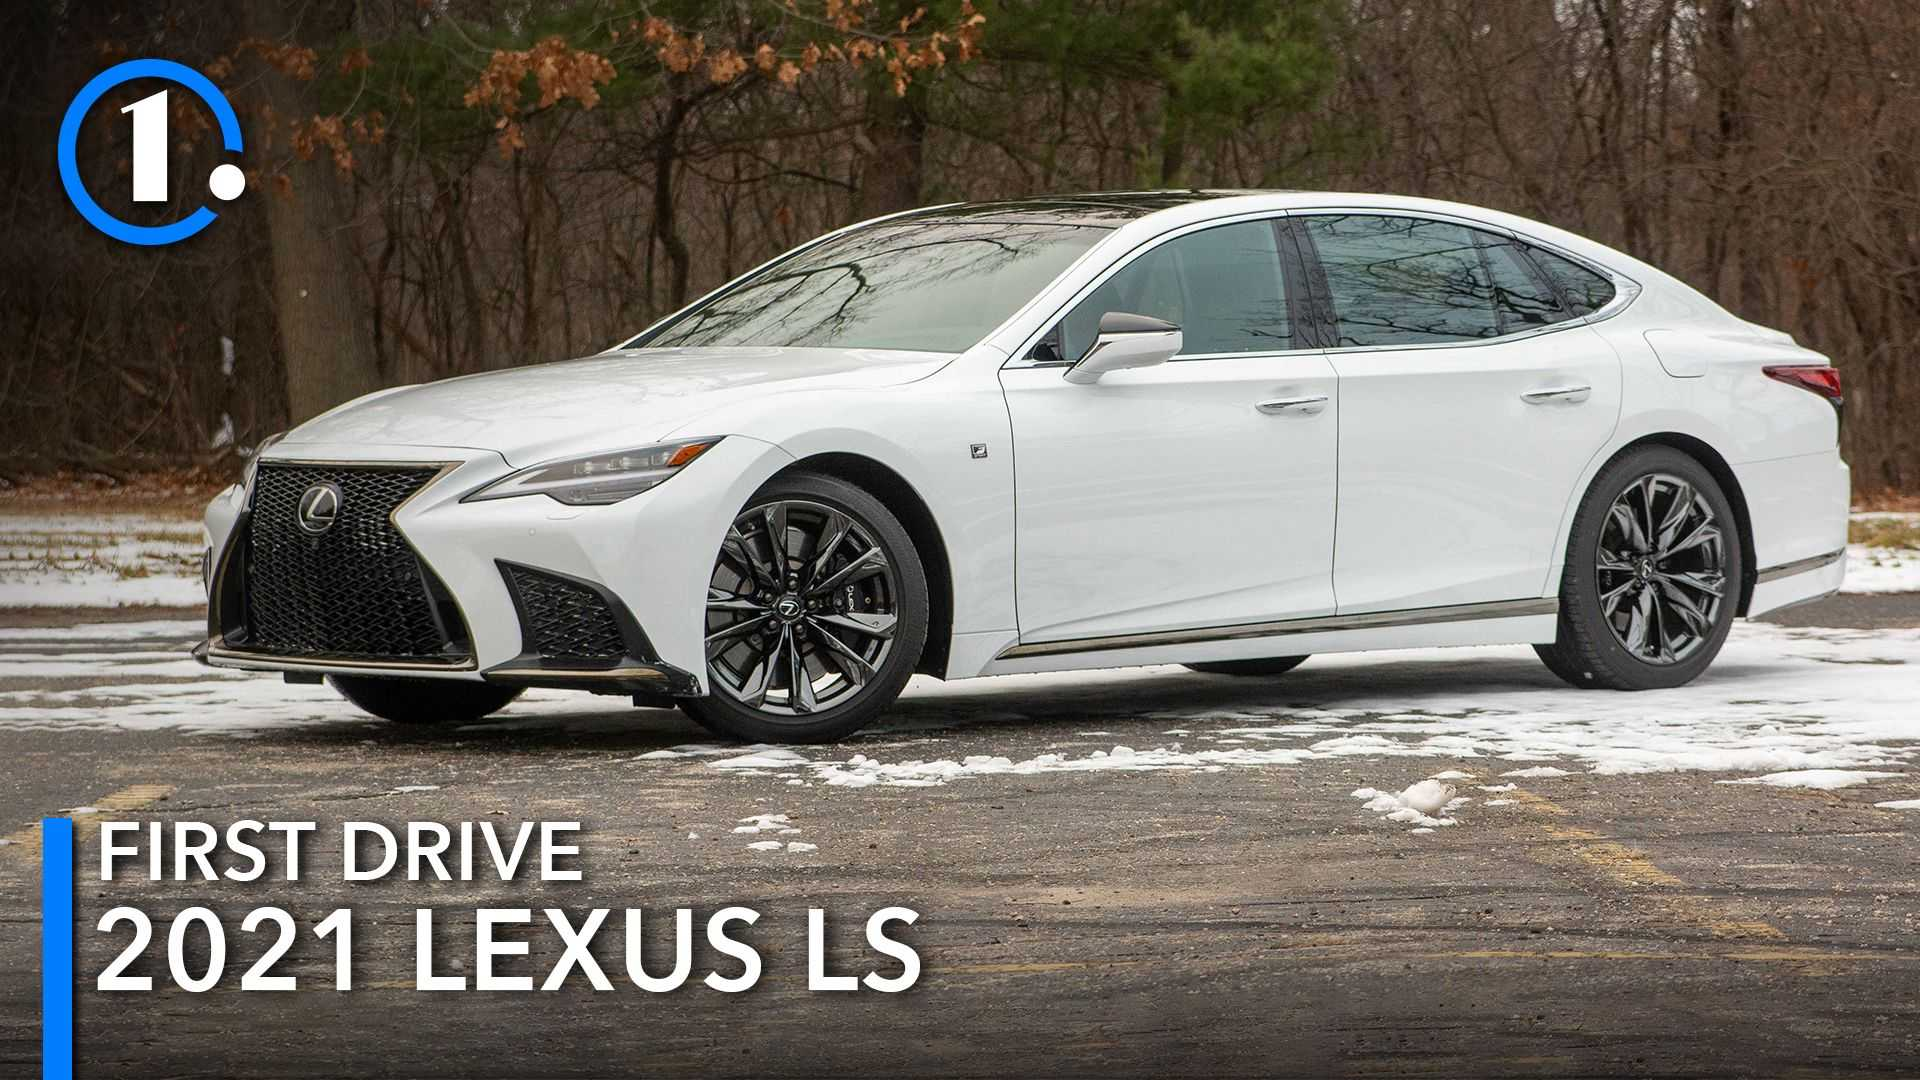 2021 lexus ls first drive review: odd priorities